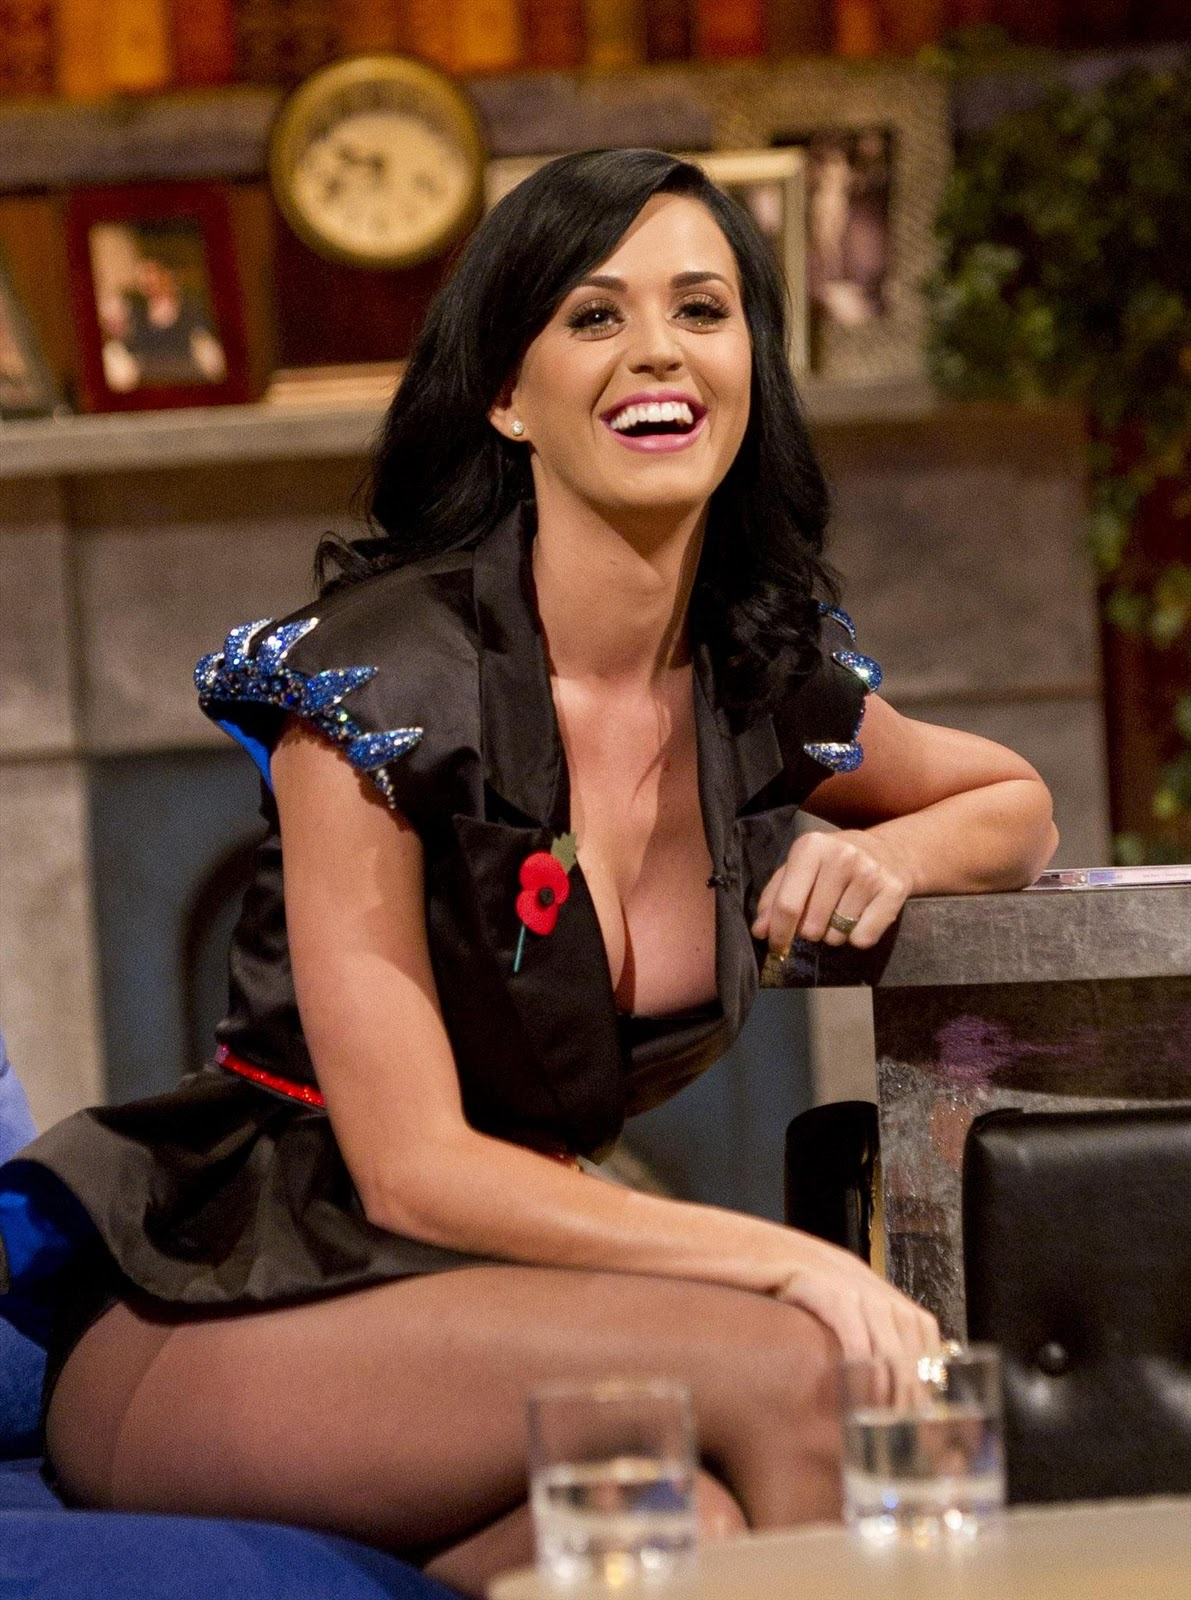 Glamour Actress Life Katy Perry Sexiest Exposure Ever Show Her Full Boobs Thigh Butt Latest Scandal